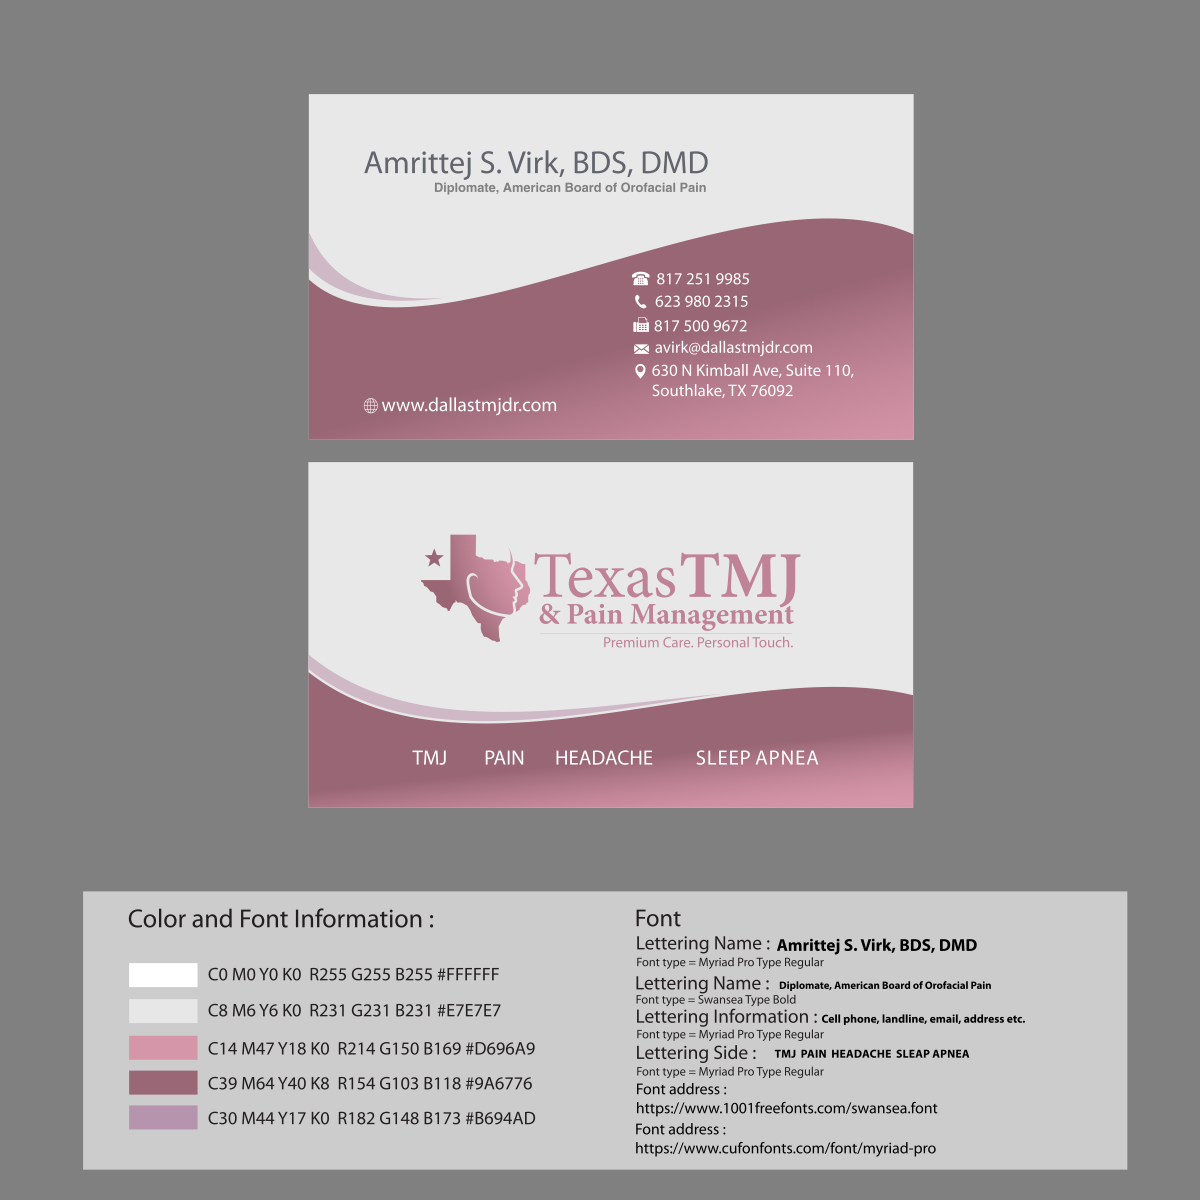 Texas TMJ and pain management